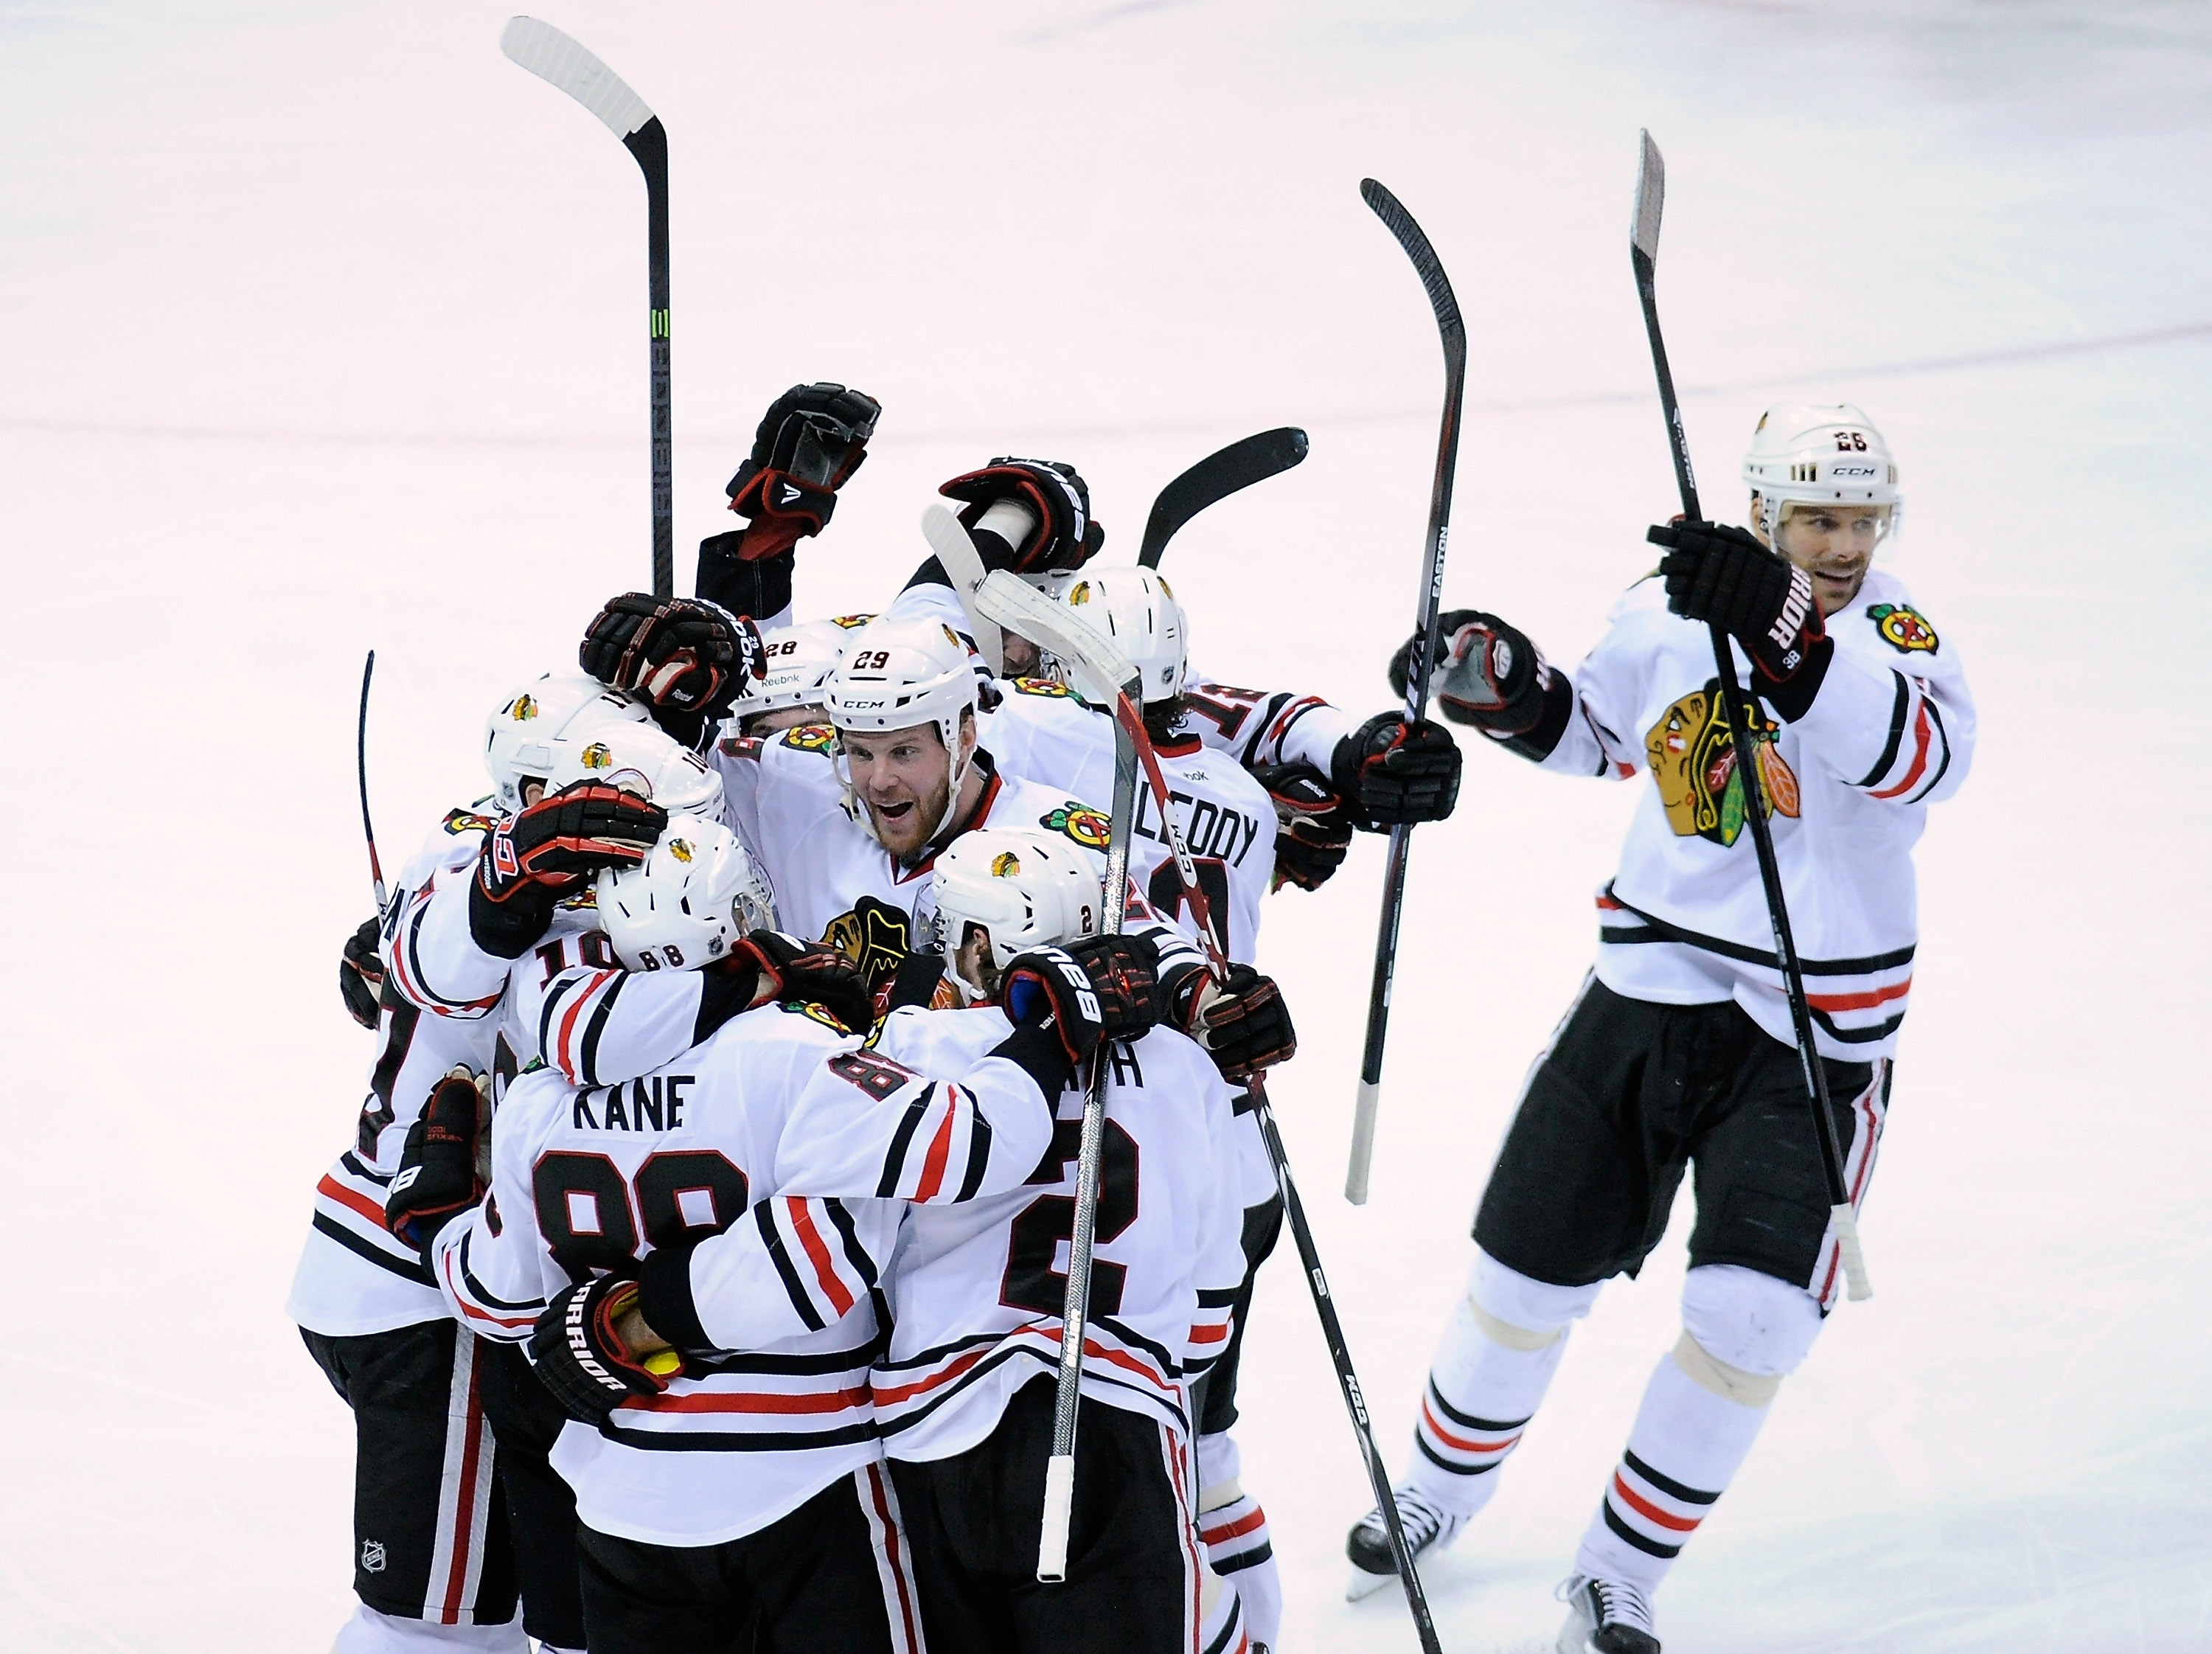 Patrick Kane is embraced by his teammates after scoring the winning goal in overtime to eliminate Minnesota in Game Six Tuesday.